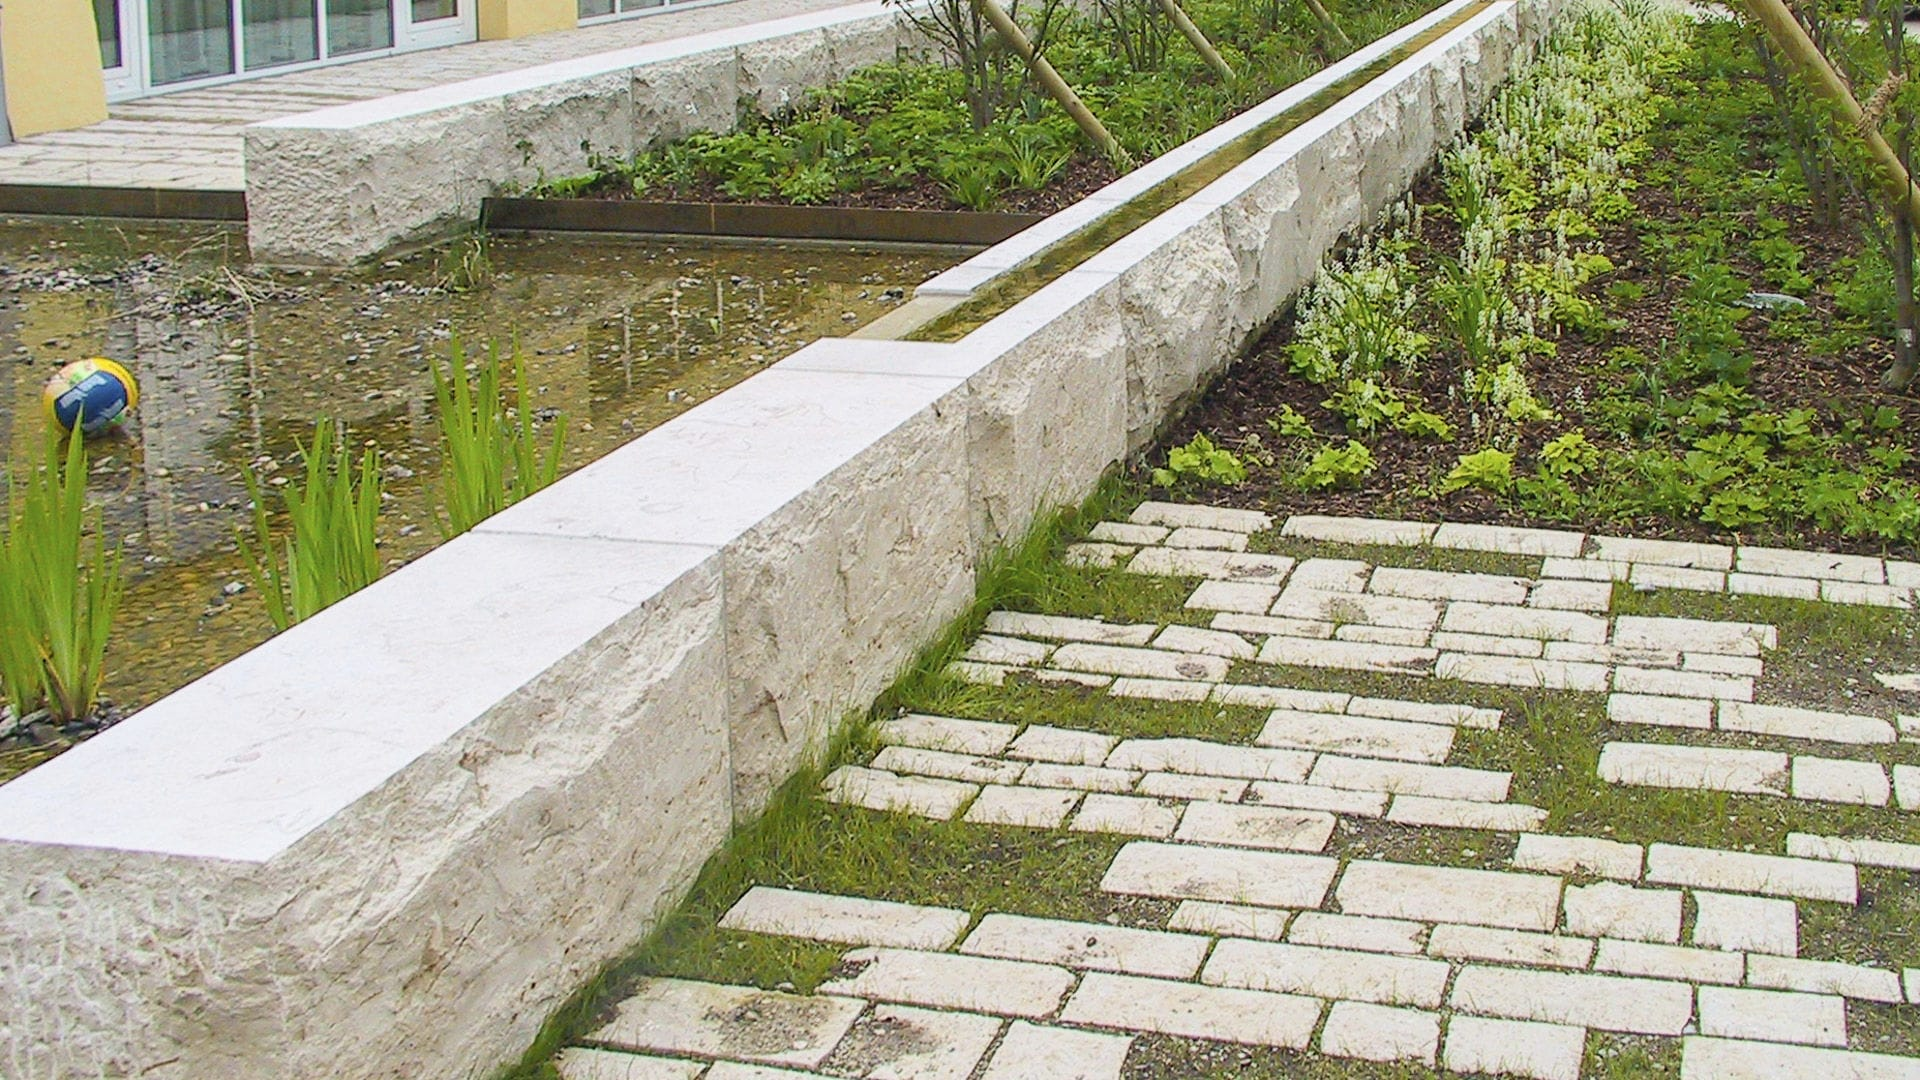 Franken Schotter paver drive for spaces outdoor